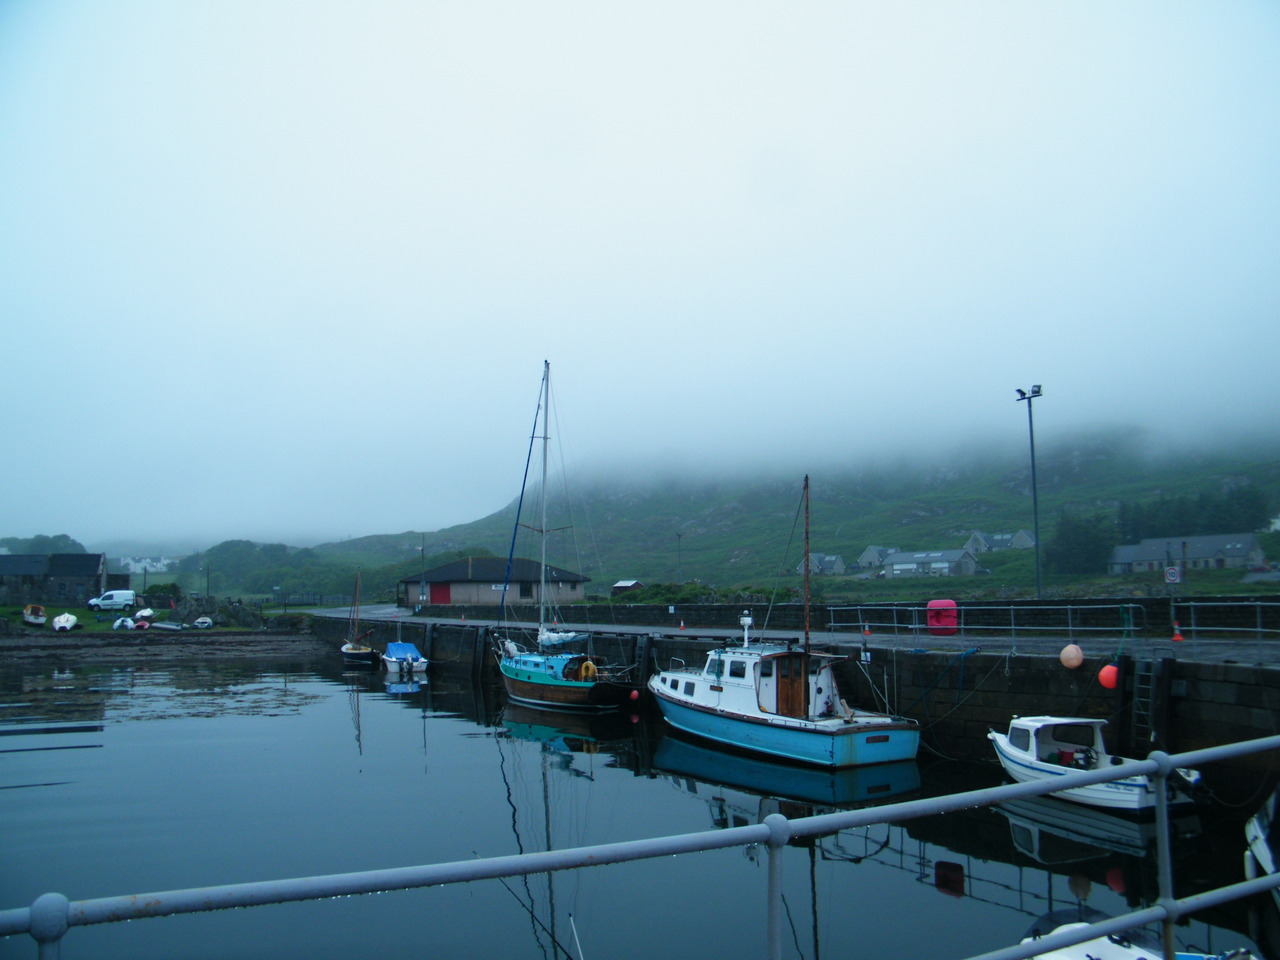 A misty Colonsay